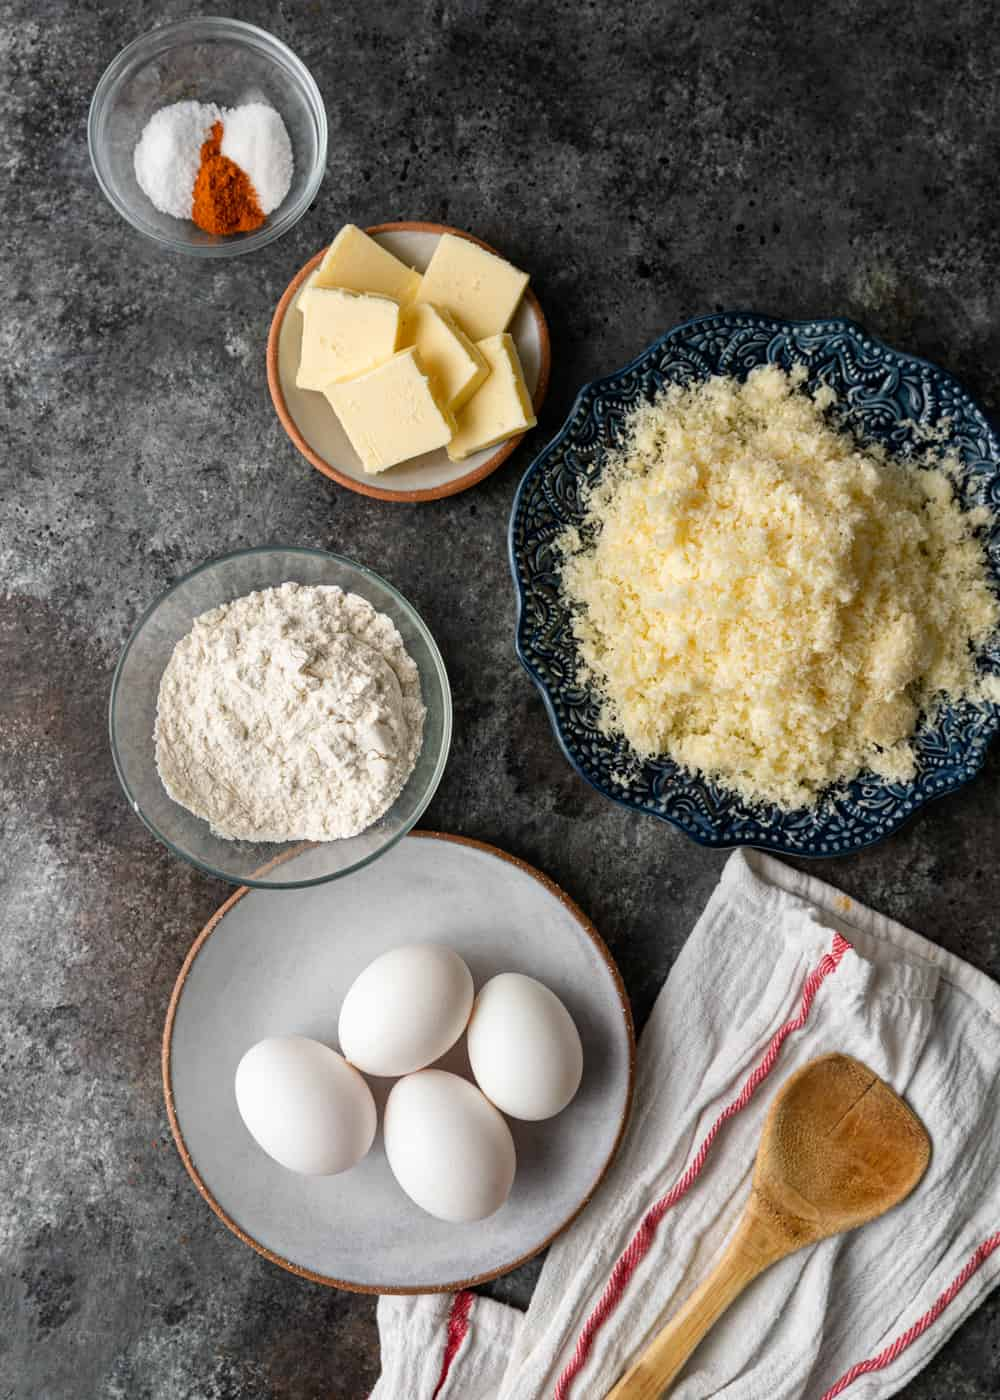 eggs, butter, flour and other ingredients to make choux pastry recipe for cheesy appetizers called gougeres